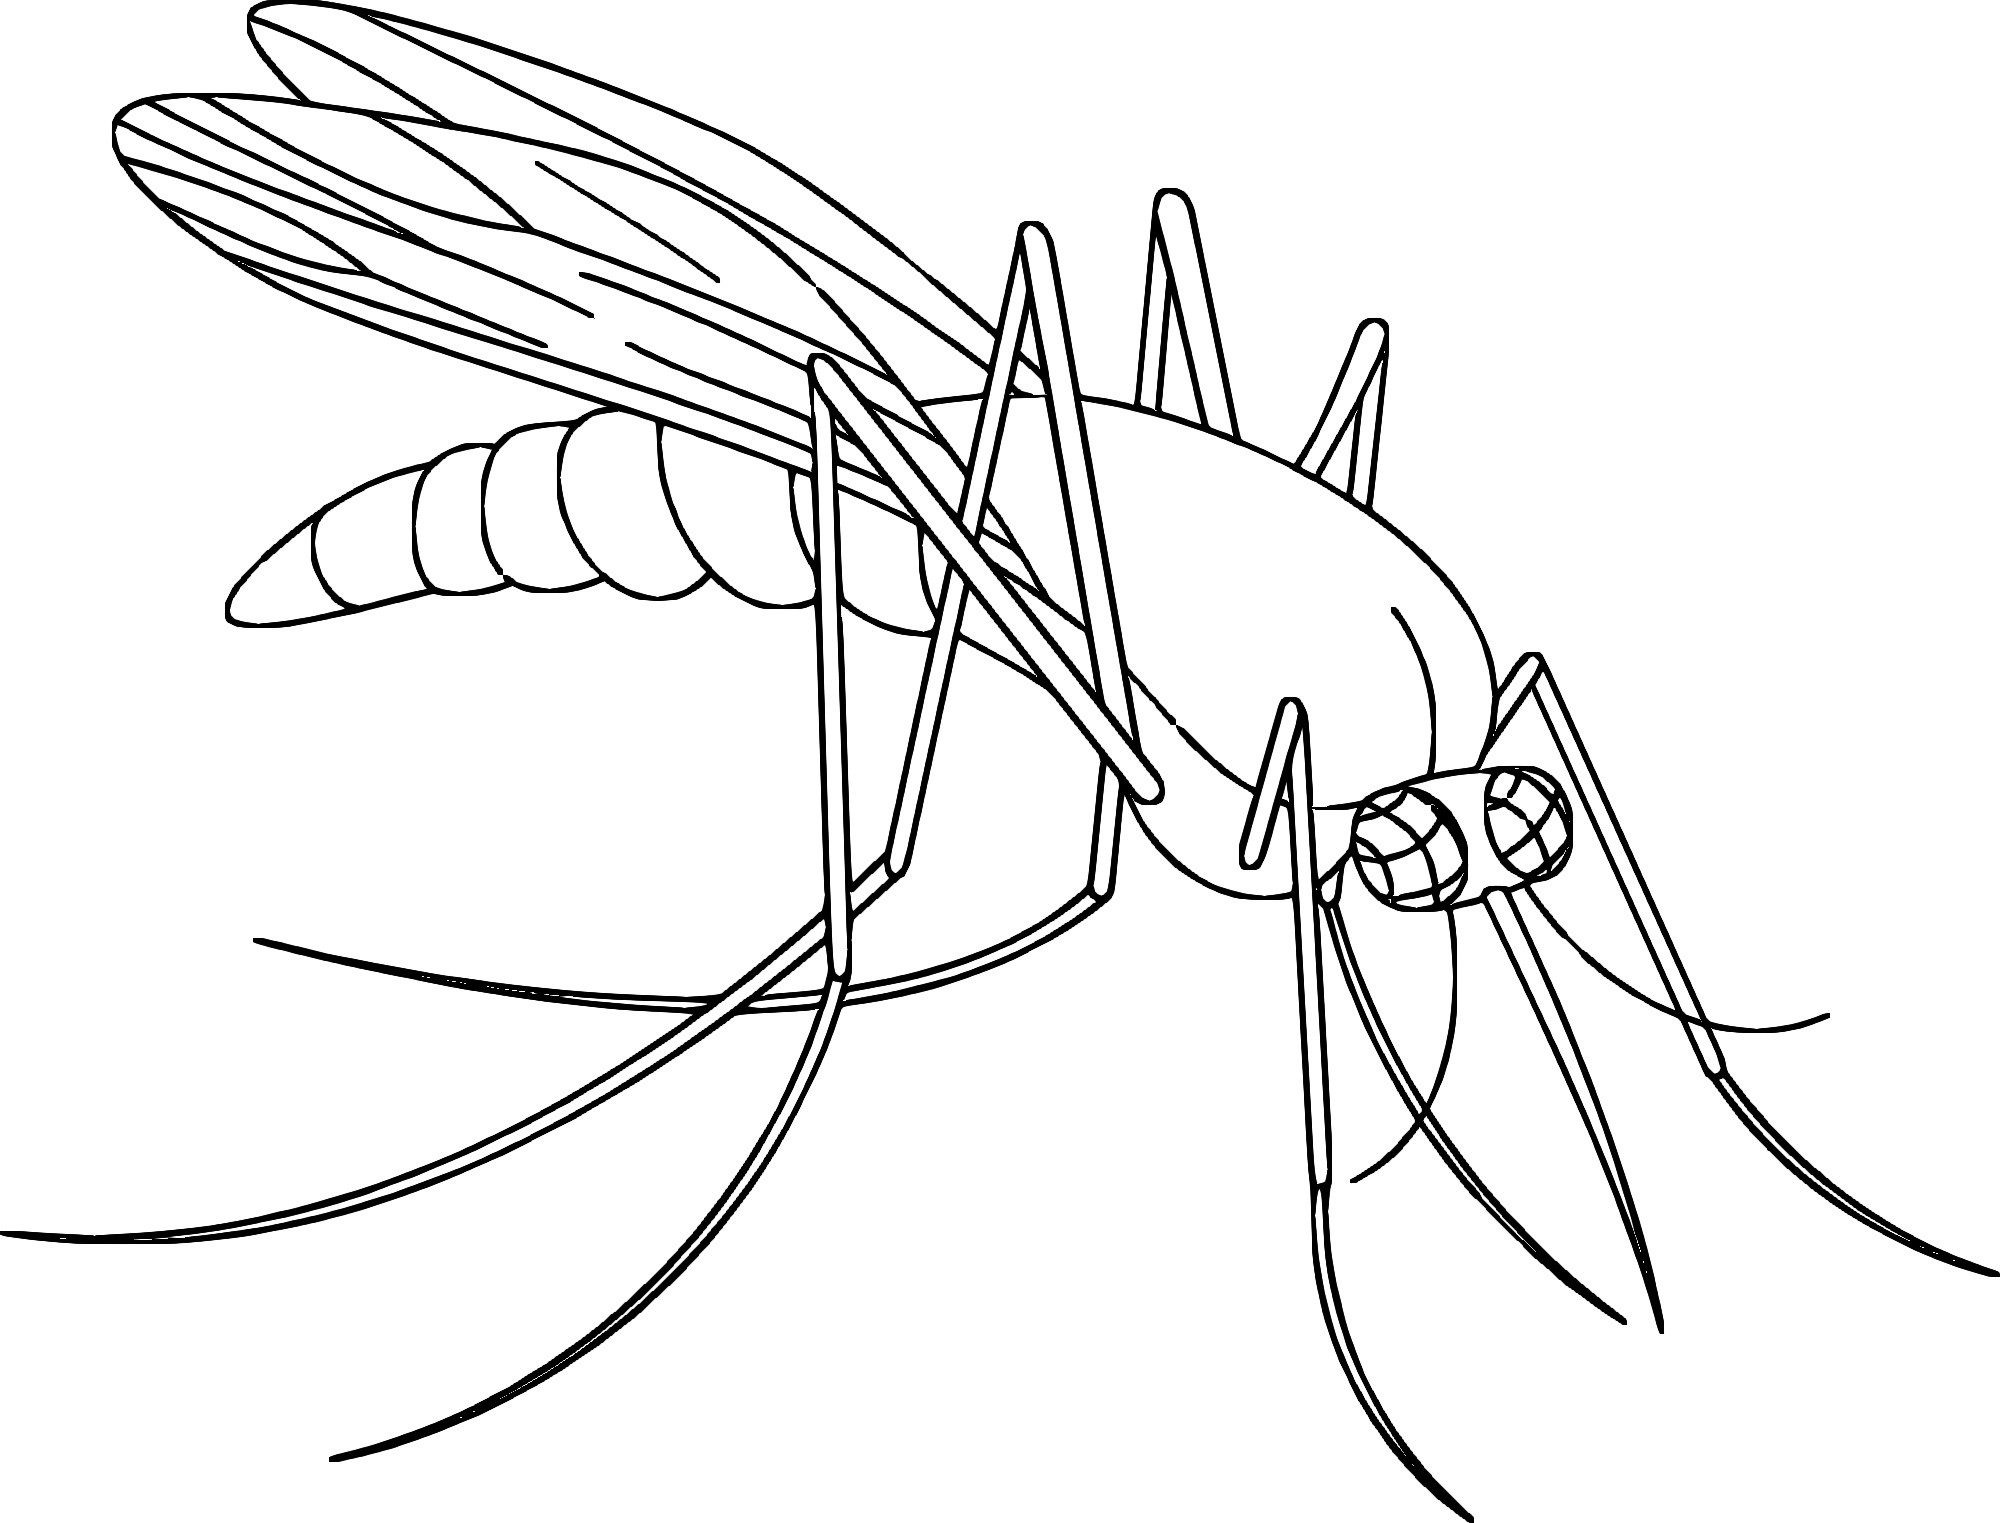 2000x1523 Mosquito Coloring Page Free Draw To Color